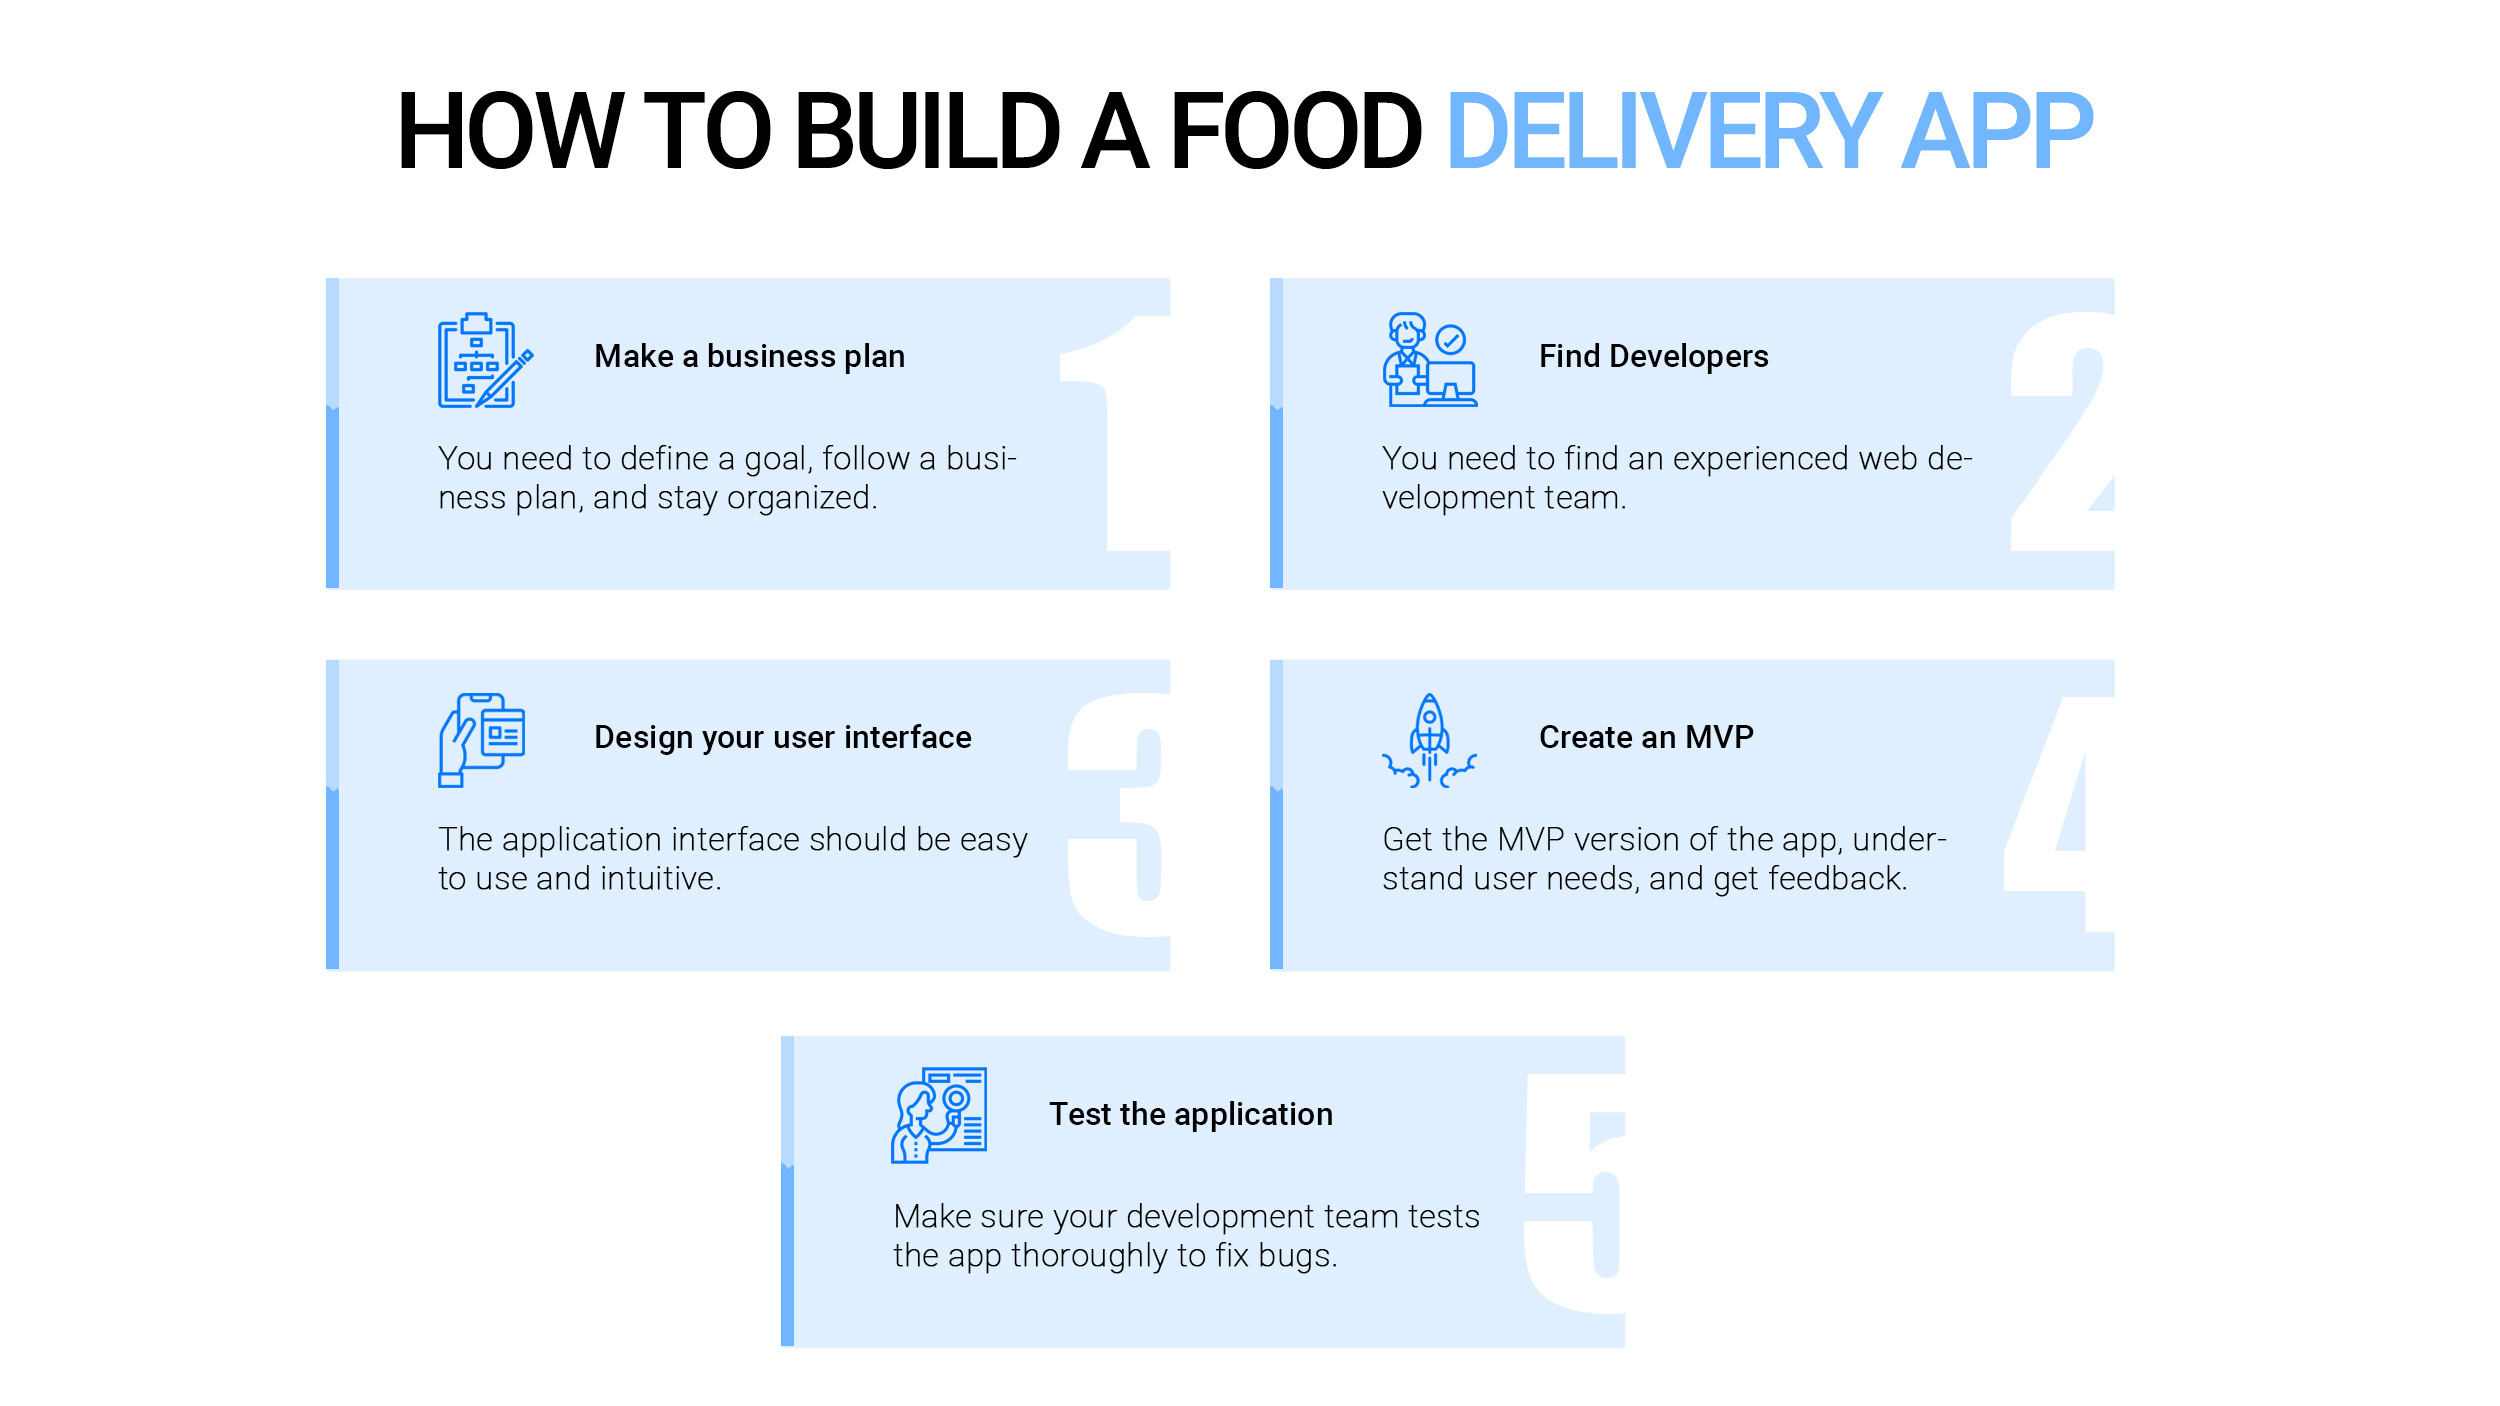 How to build a food delivery app